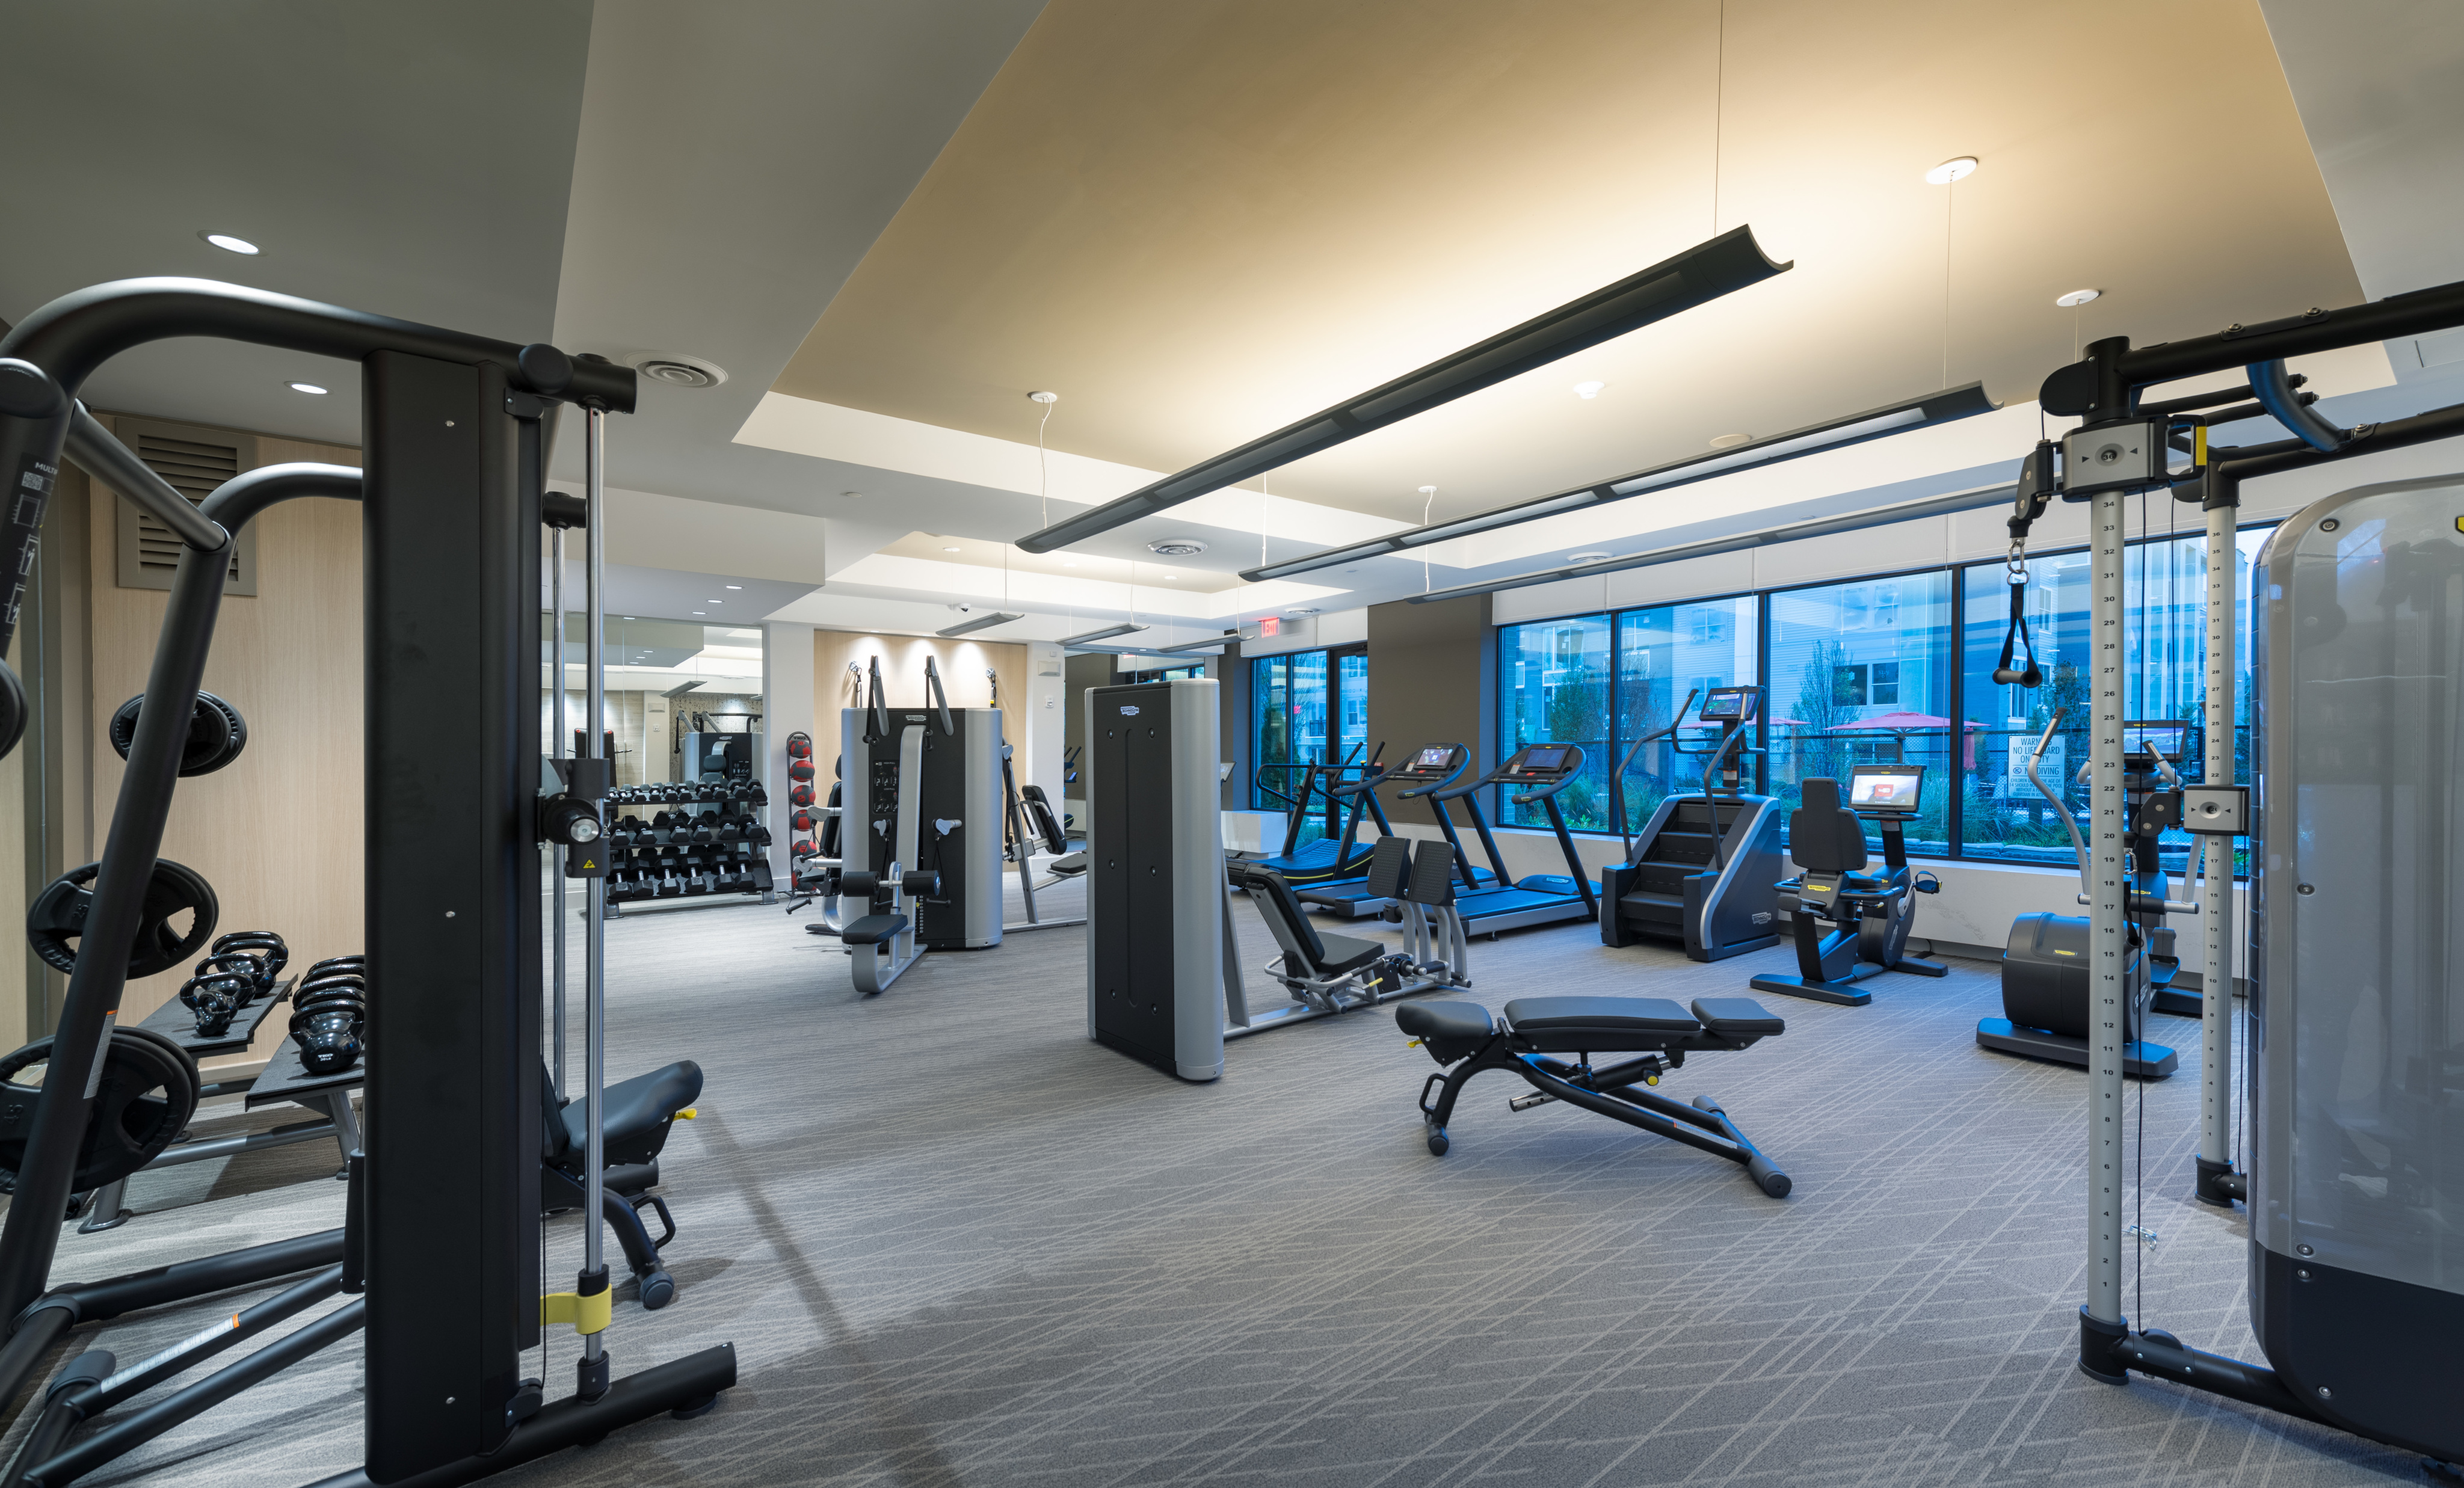 24-hour fitness center with TechnoGym cardio & strength equipment, Peloton On-Demand and yoga stretch space at Hanover Westford Valley